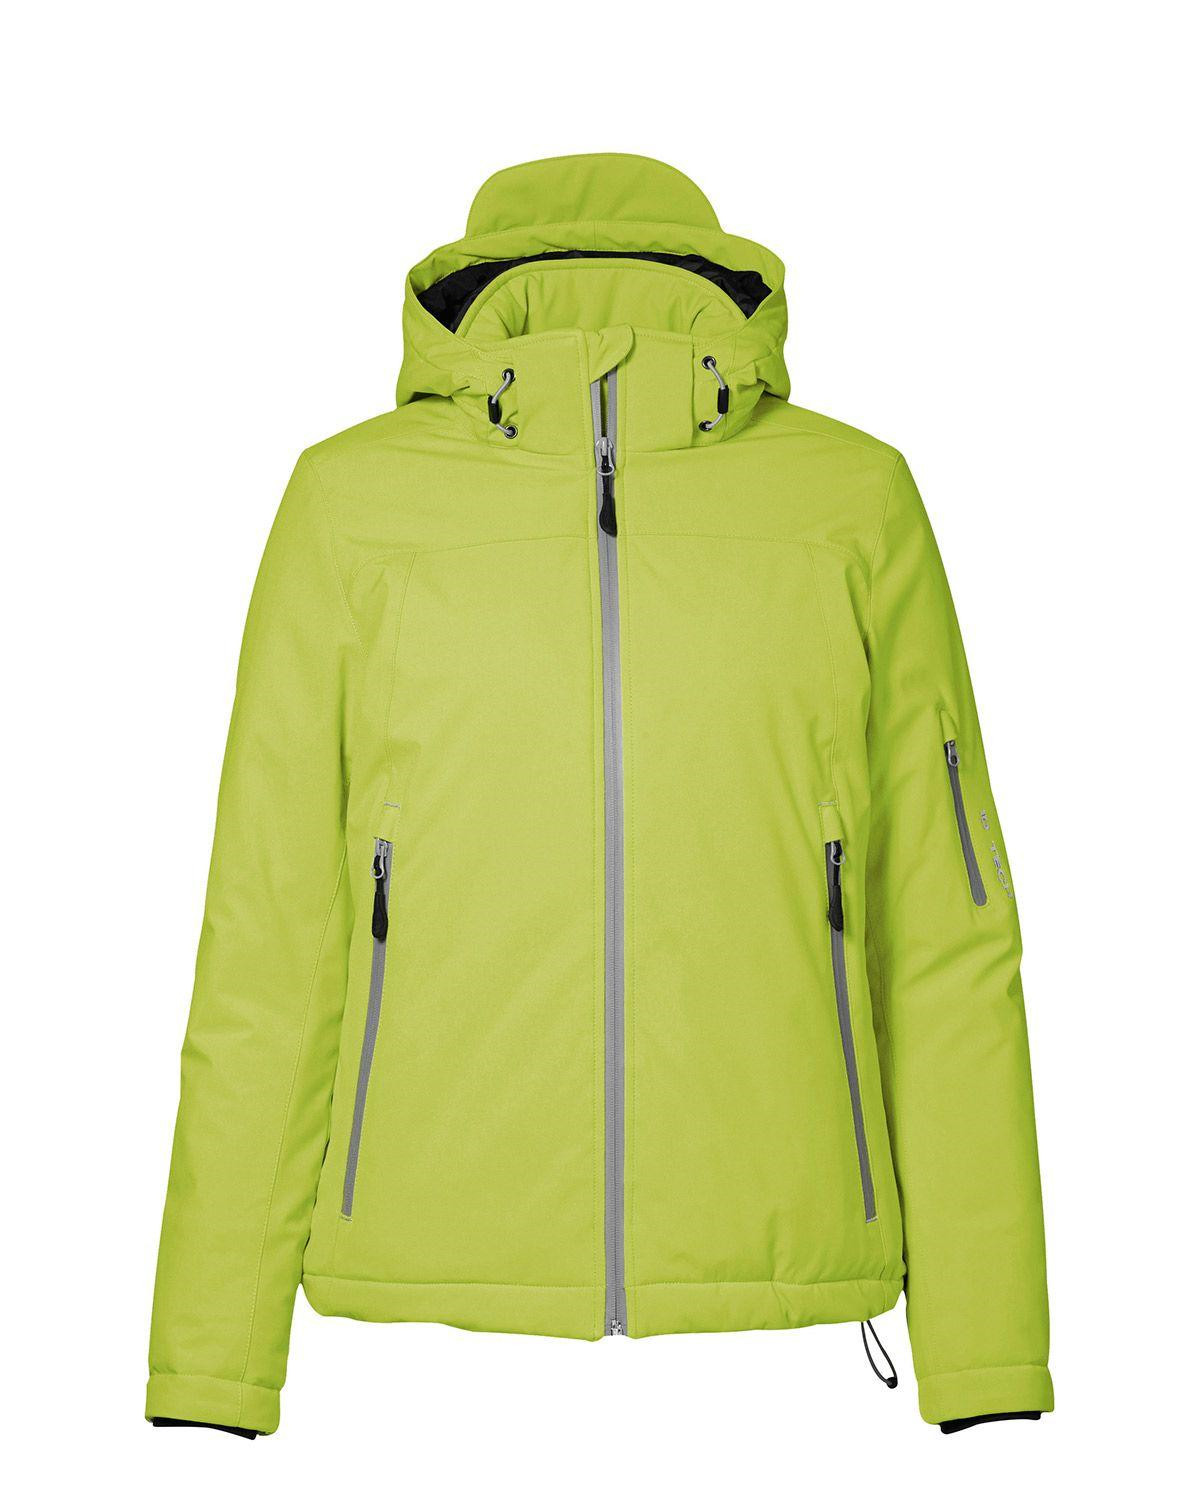 ID Vinter Softshell Jacka - Dam (Lime, XL)